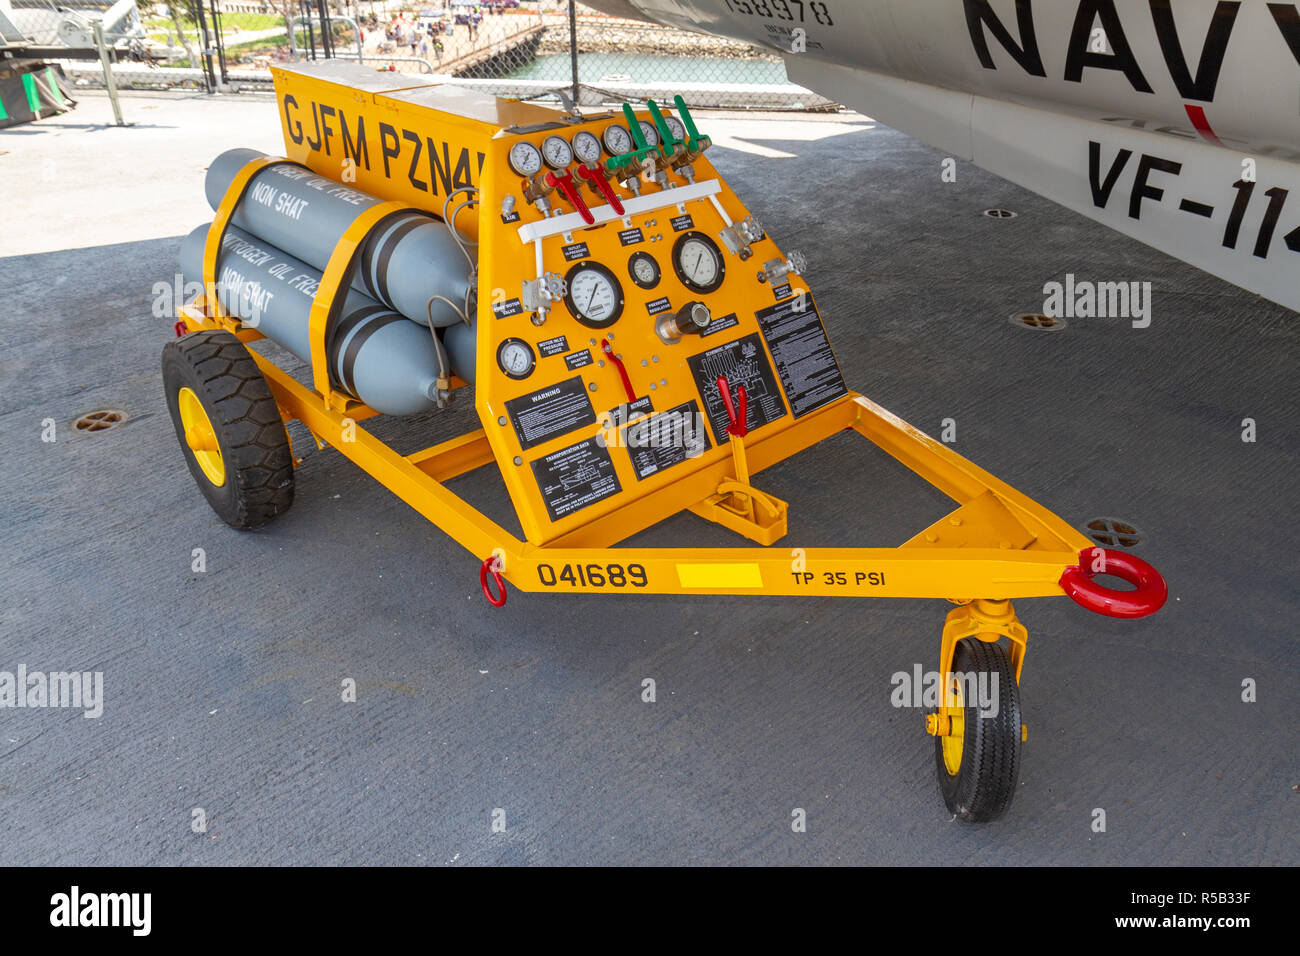 A nitrogen servicing unit (ground support equipment) USS Midway Museum, San Diego, California, United States. - Stock Image